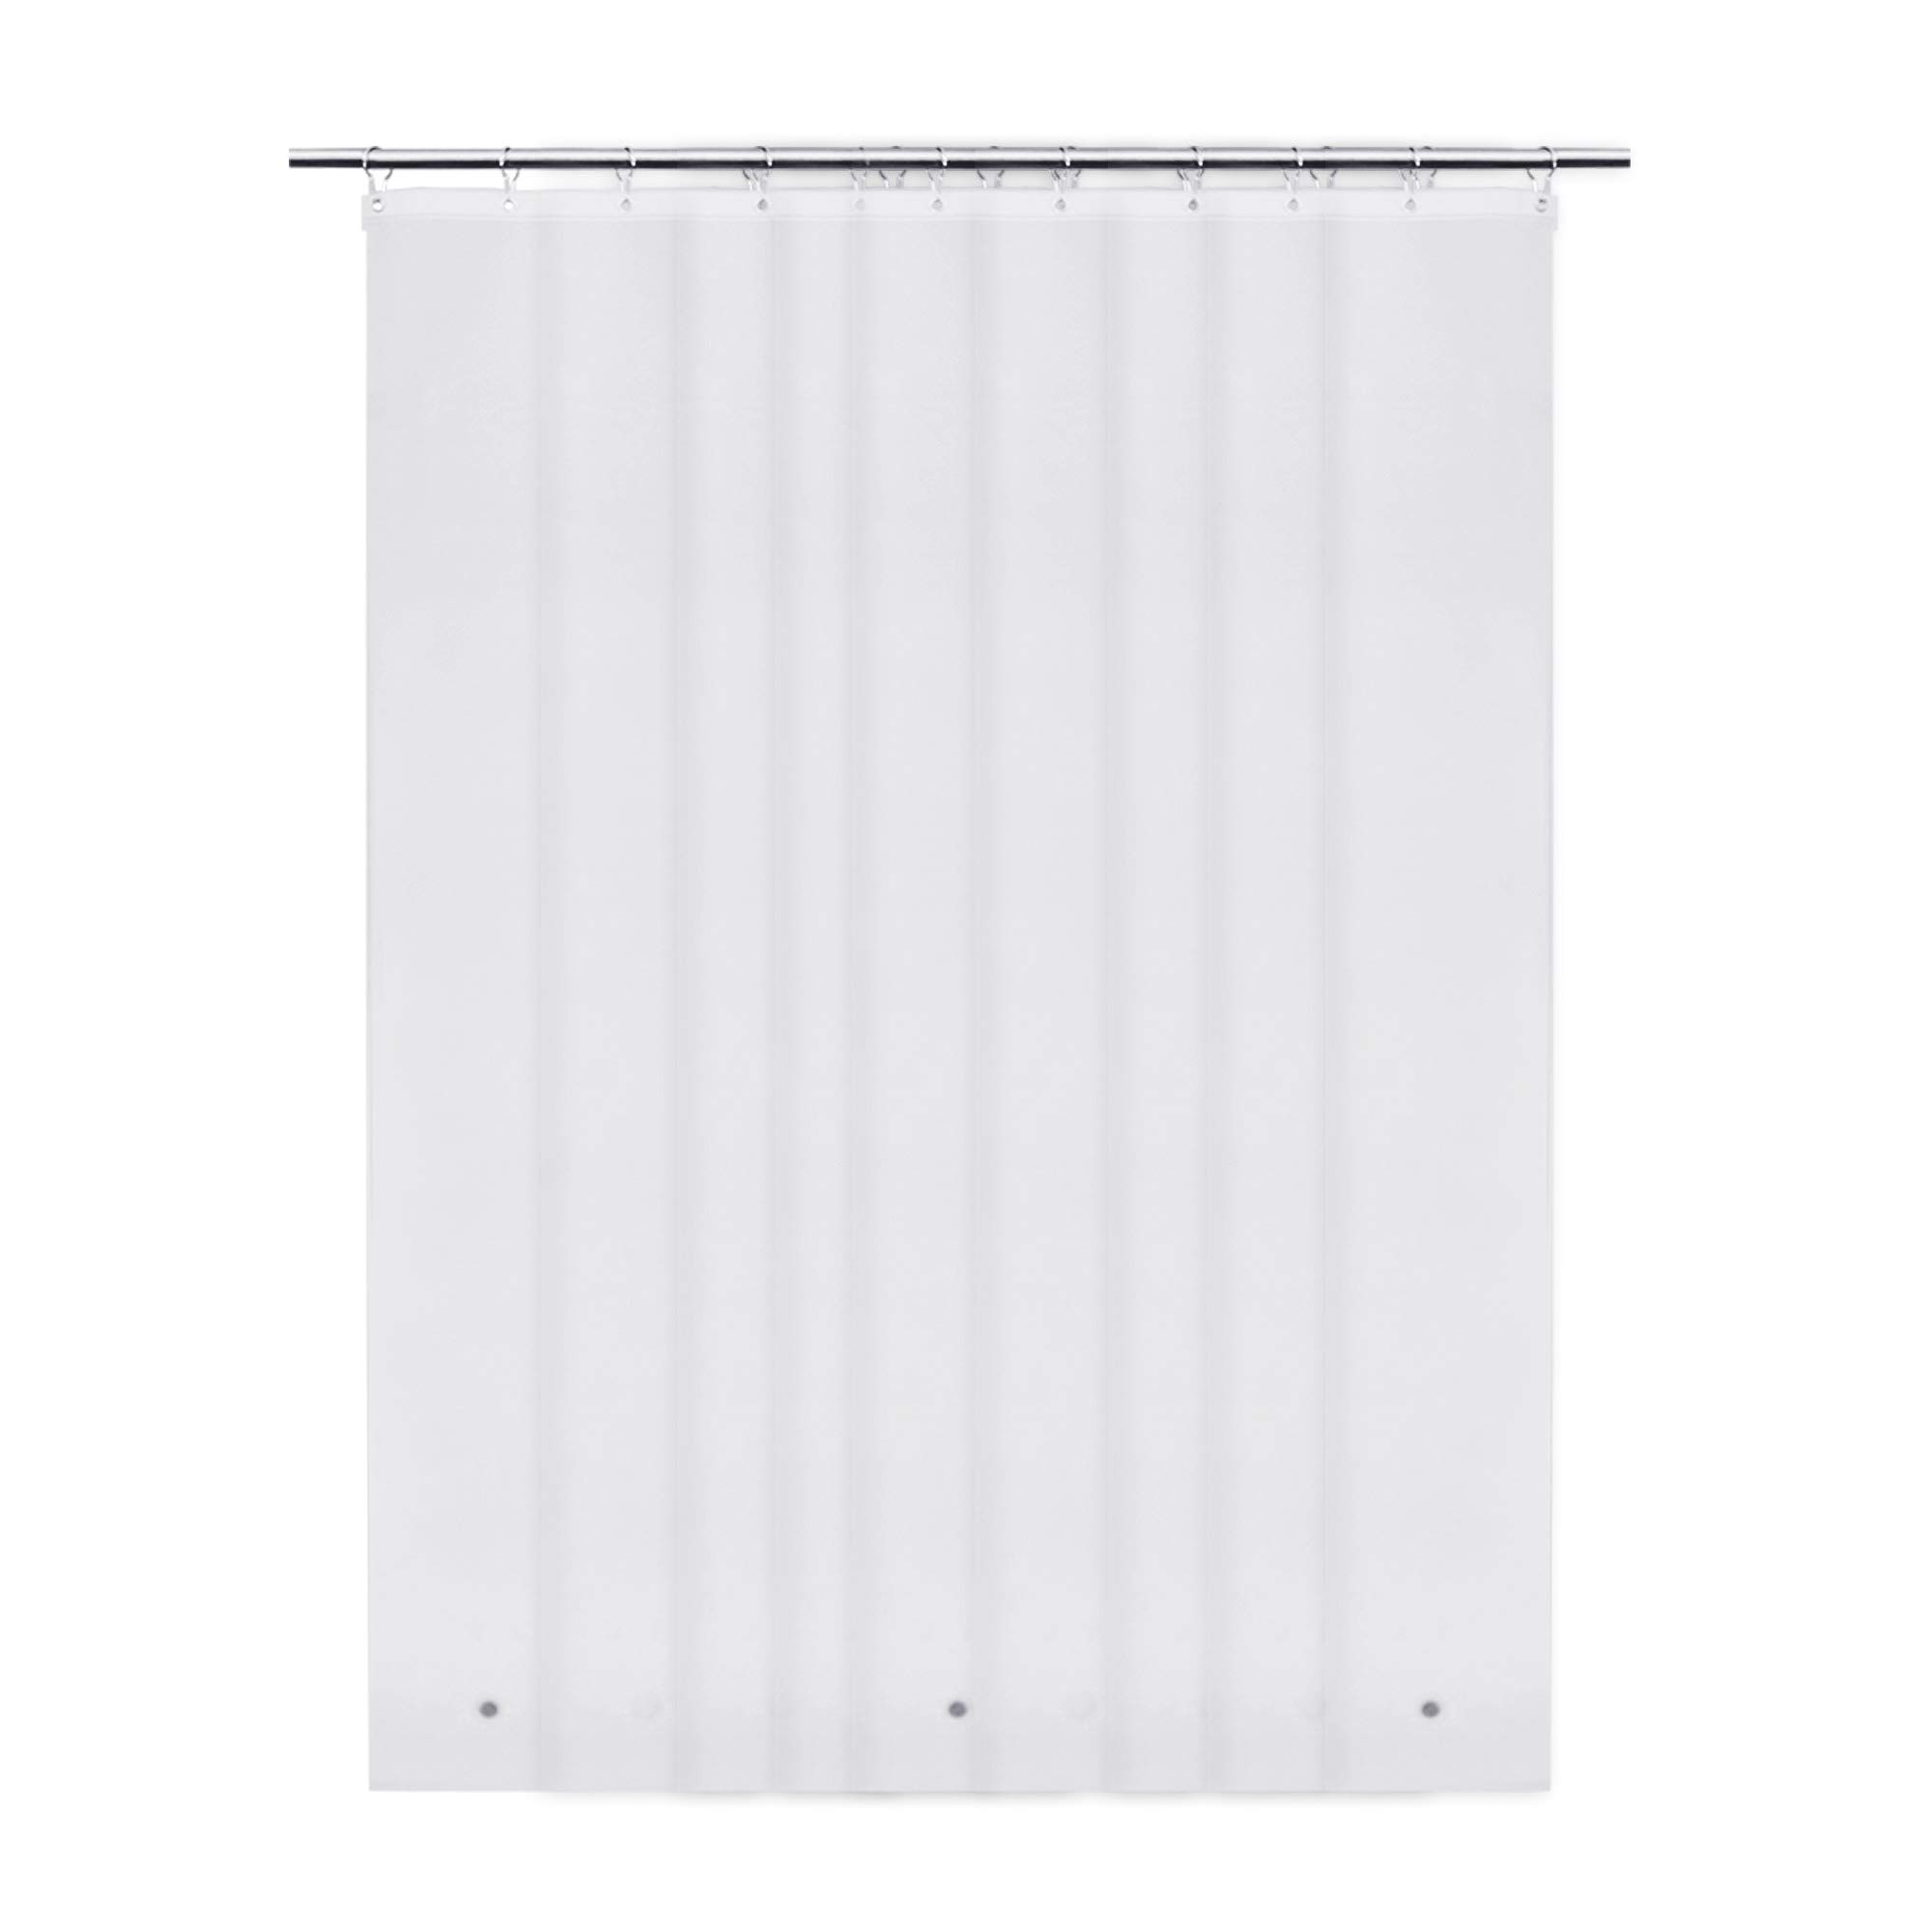 FAJI Shower Curtain Liner - Prevents Drafts + 6 Magnets + Forked Bottom + Extra Heavy Weight 8G